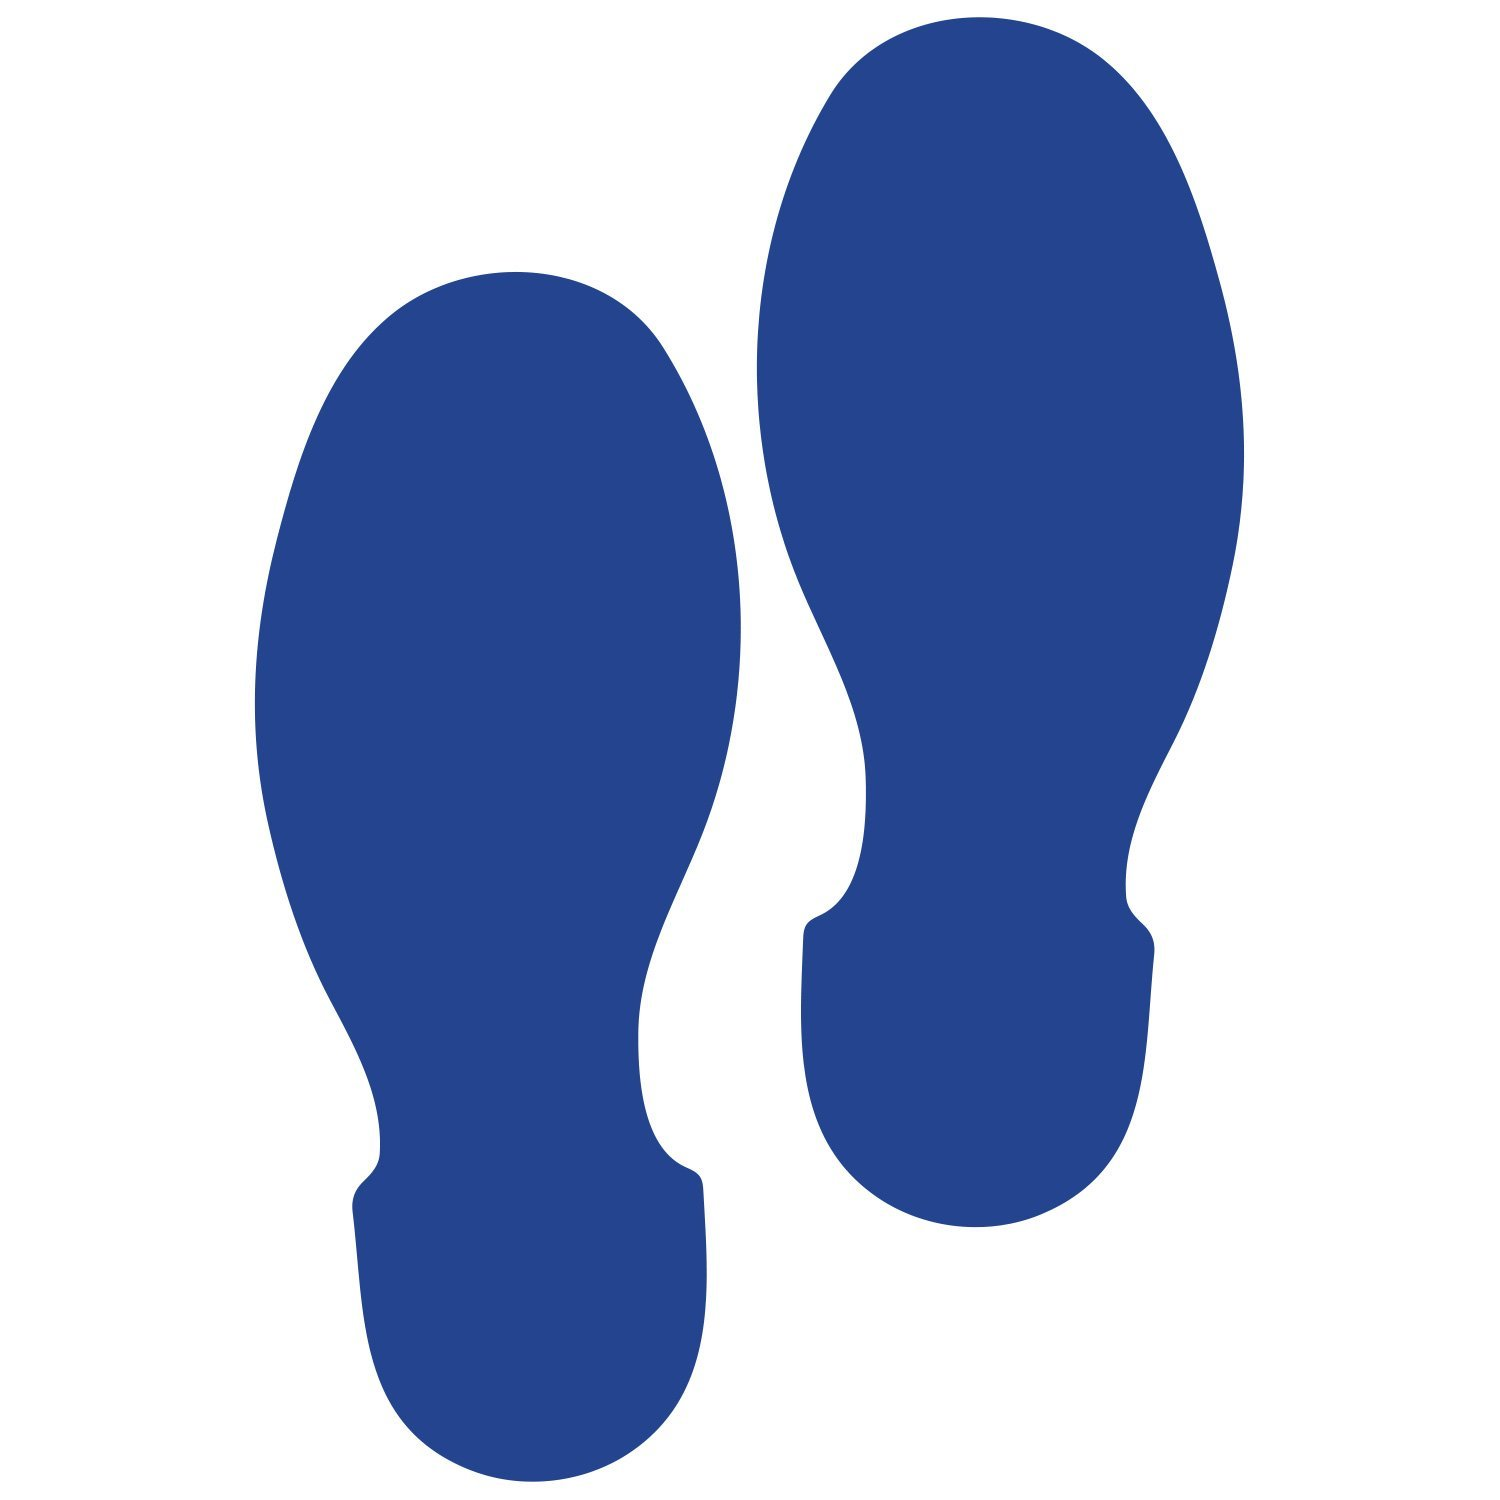 LiteMark 9 Inch Blue Shoe Print Decal Stickers for Floors and Walls - Pack of 12